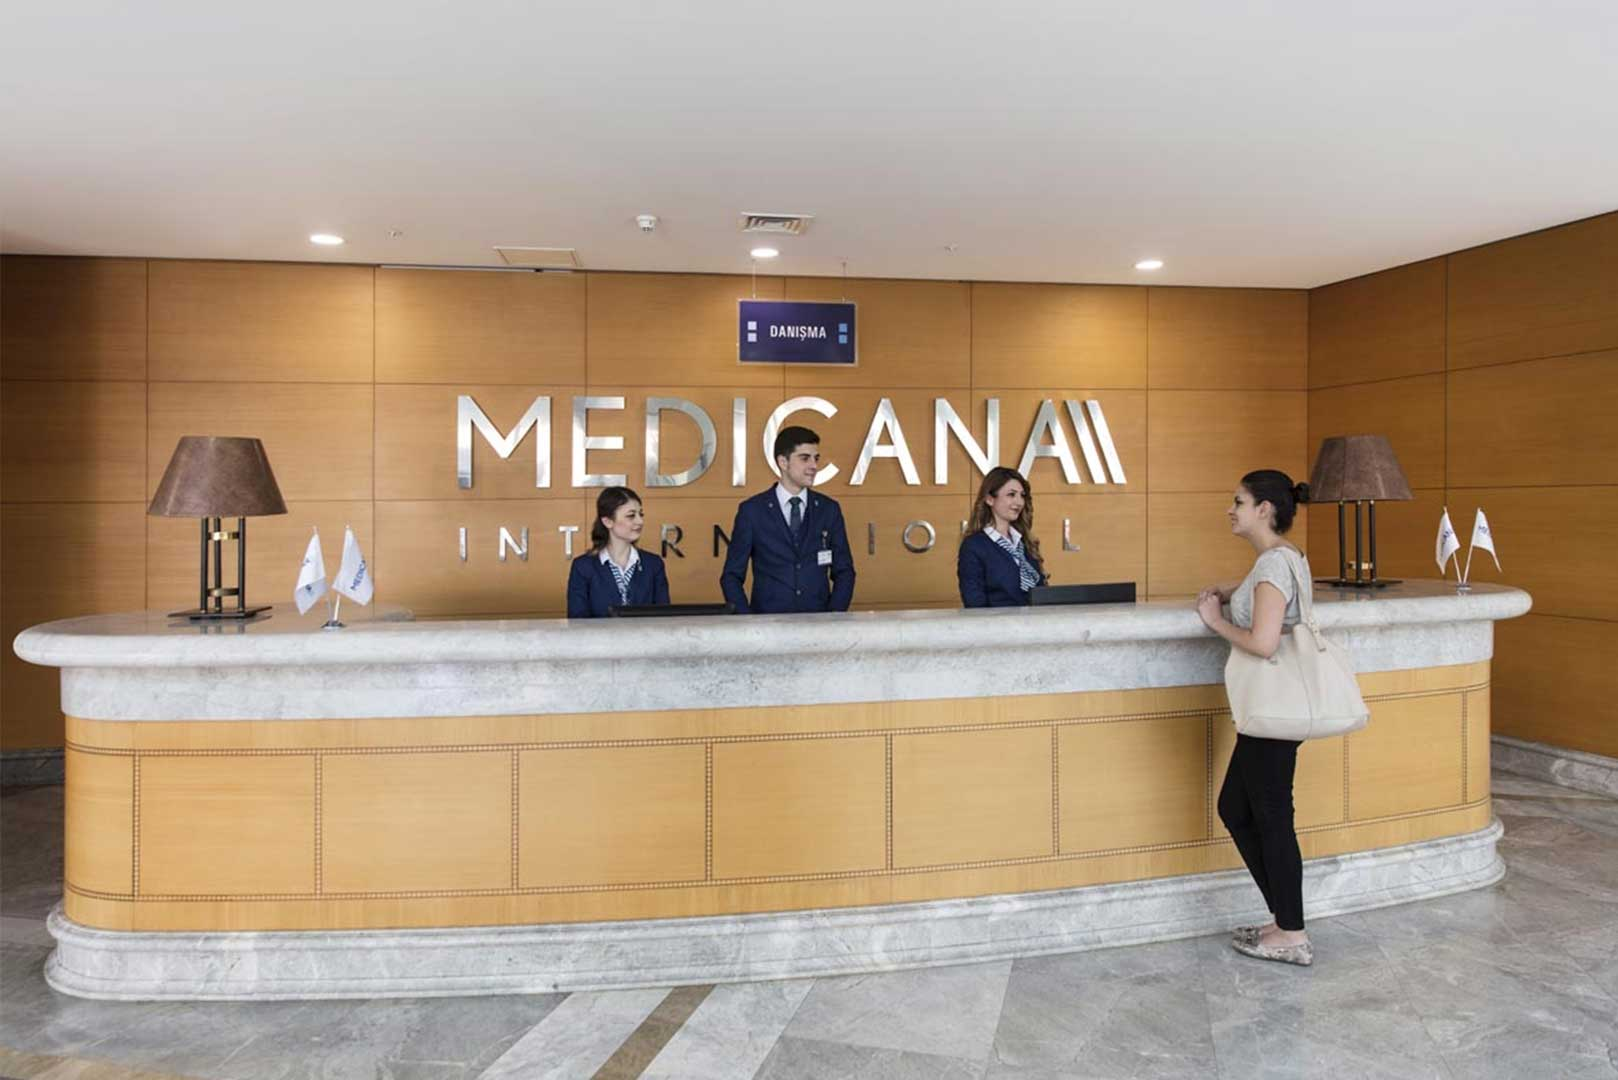 https://www.medicanahealthpoint.com/wp-content/uploads/2020/10/medicana-international-istanbul-8.jpg